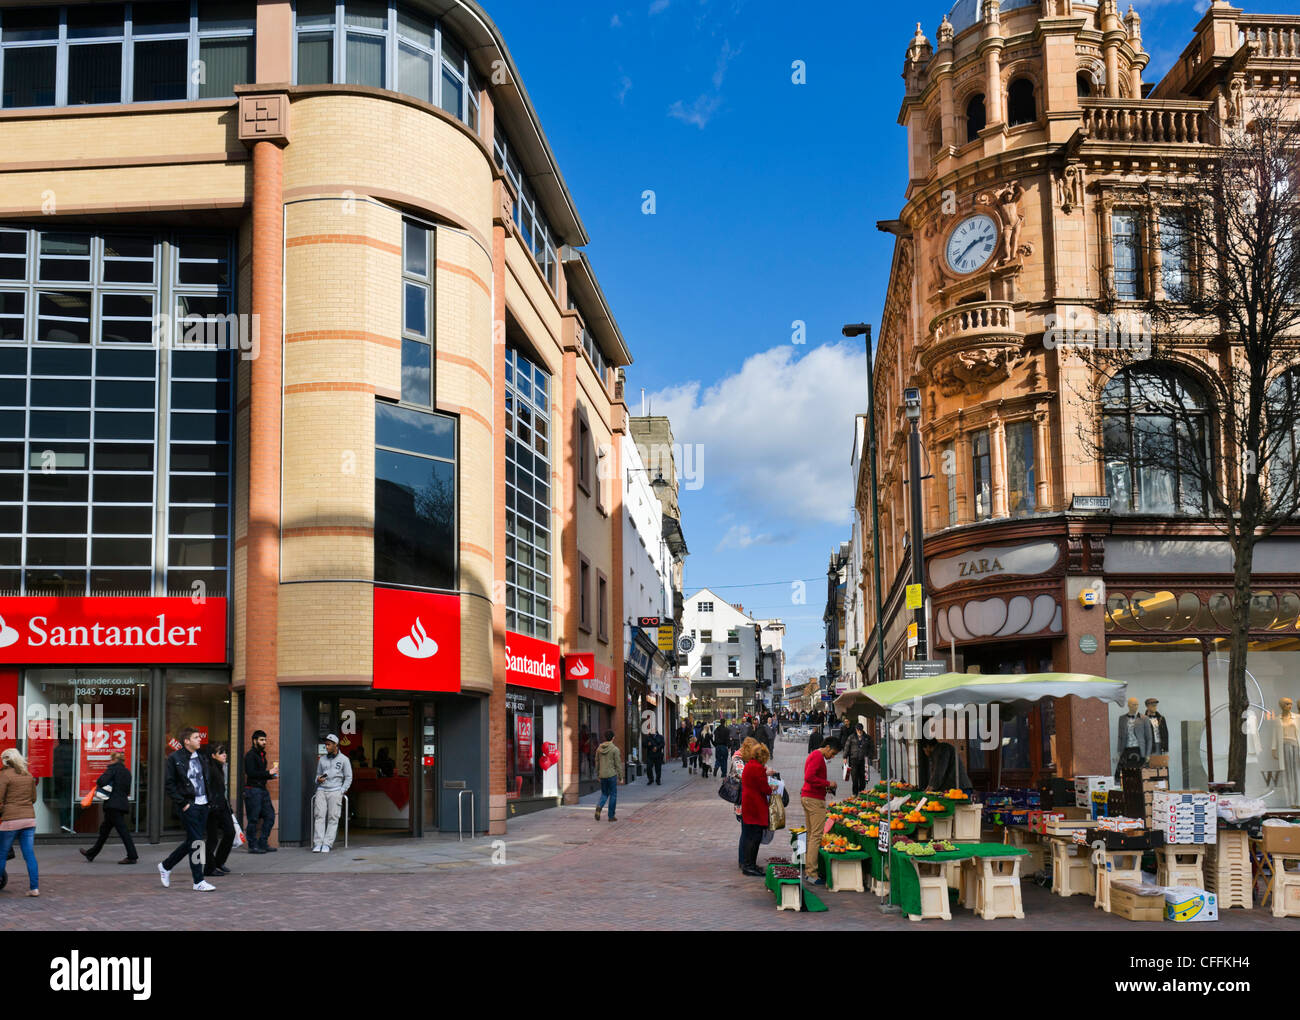 Shops at the junction of High Street and Long Row in the city centre, Nottingham, Nottinghamshire, England, UK Stock Photo